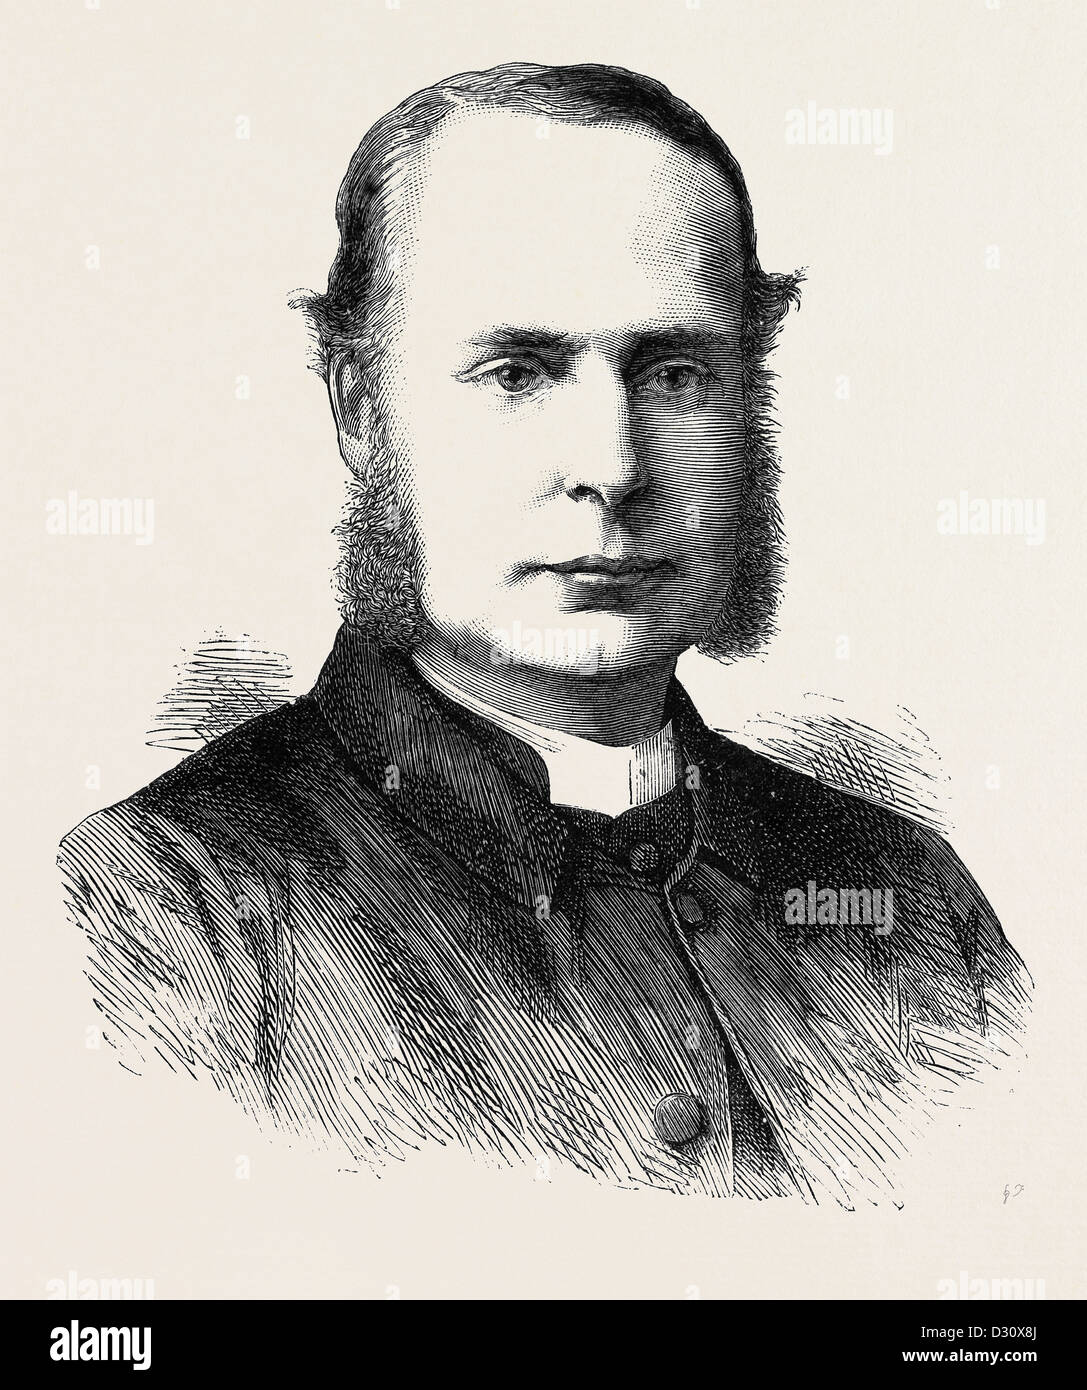 THE REV. CANON ERNEST ROLAND WILBERFORCE, BISHOP-ELECT OF NEWCASTLE-ON-TYNE - Stock Image